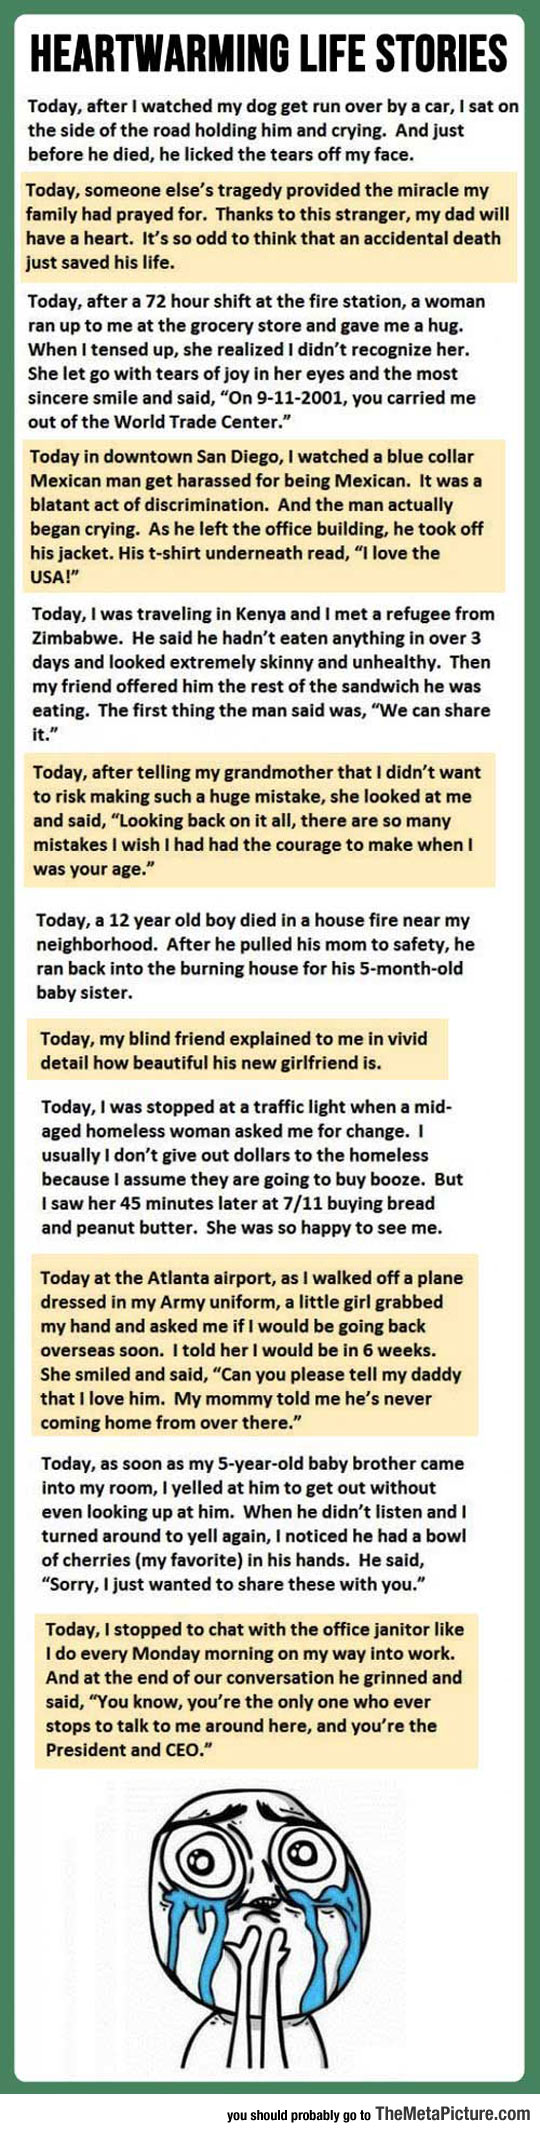 funny-story-janitor-CEO-heartwarming